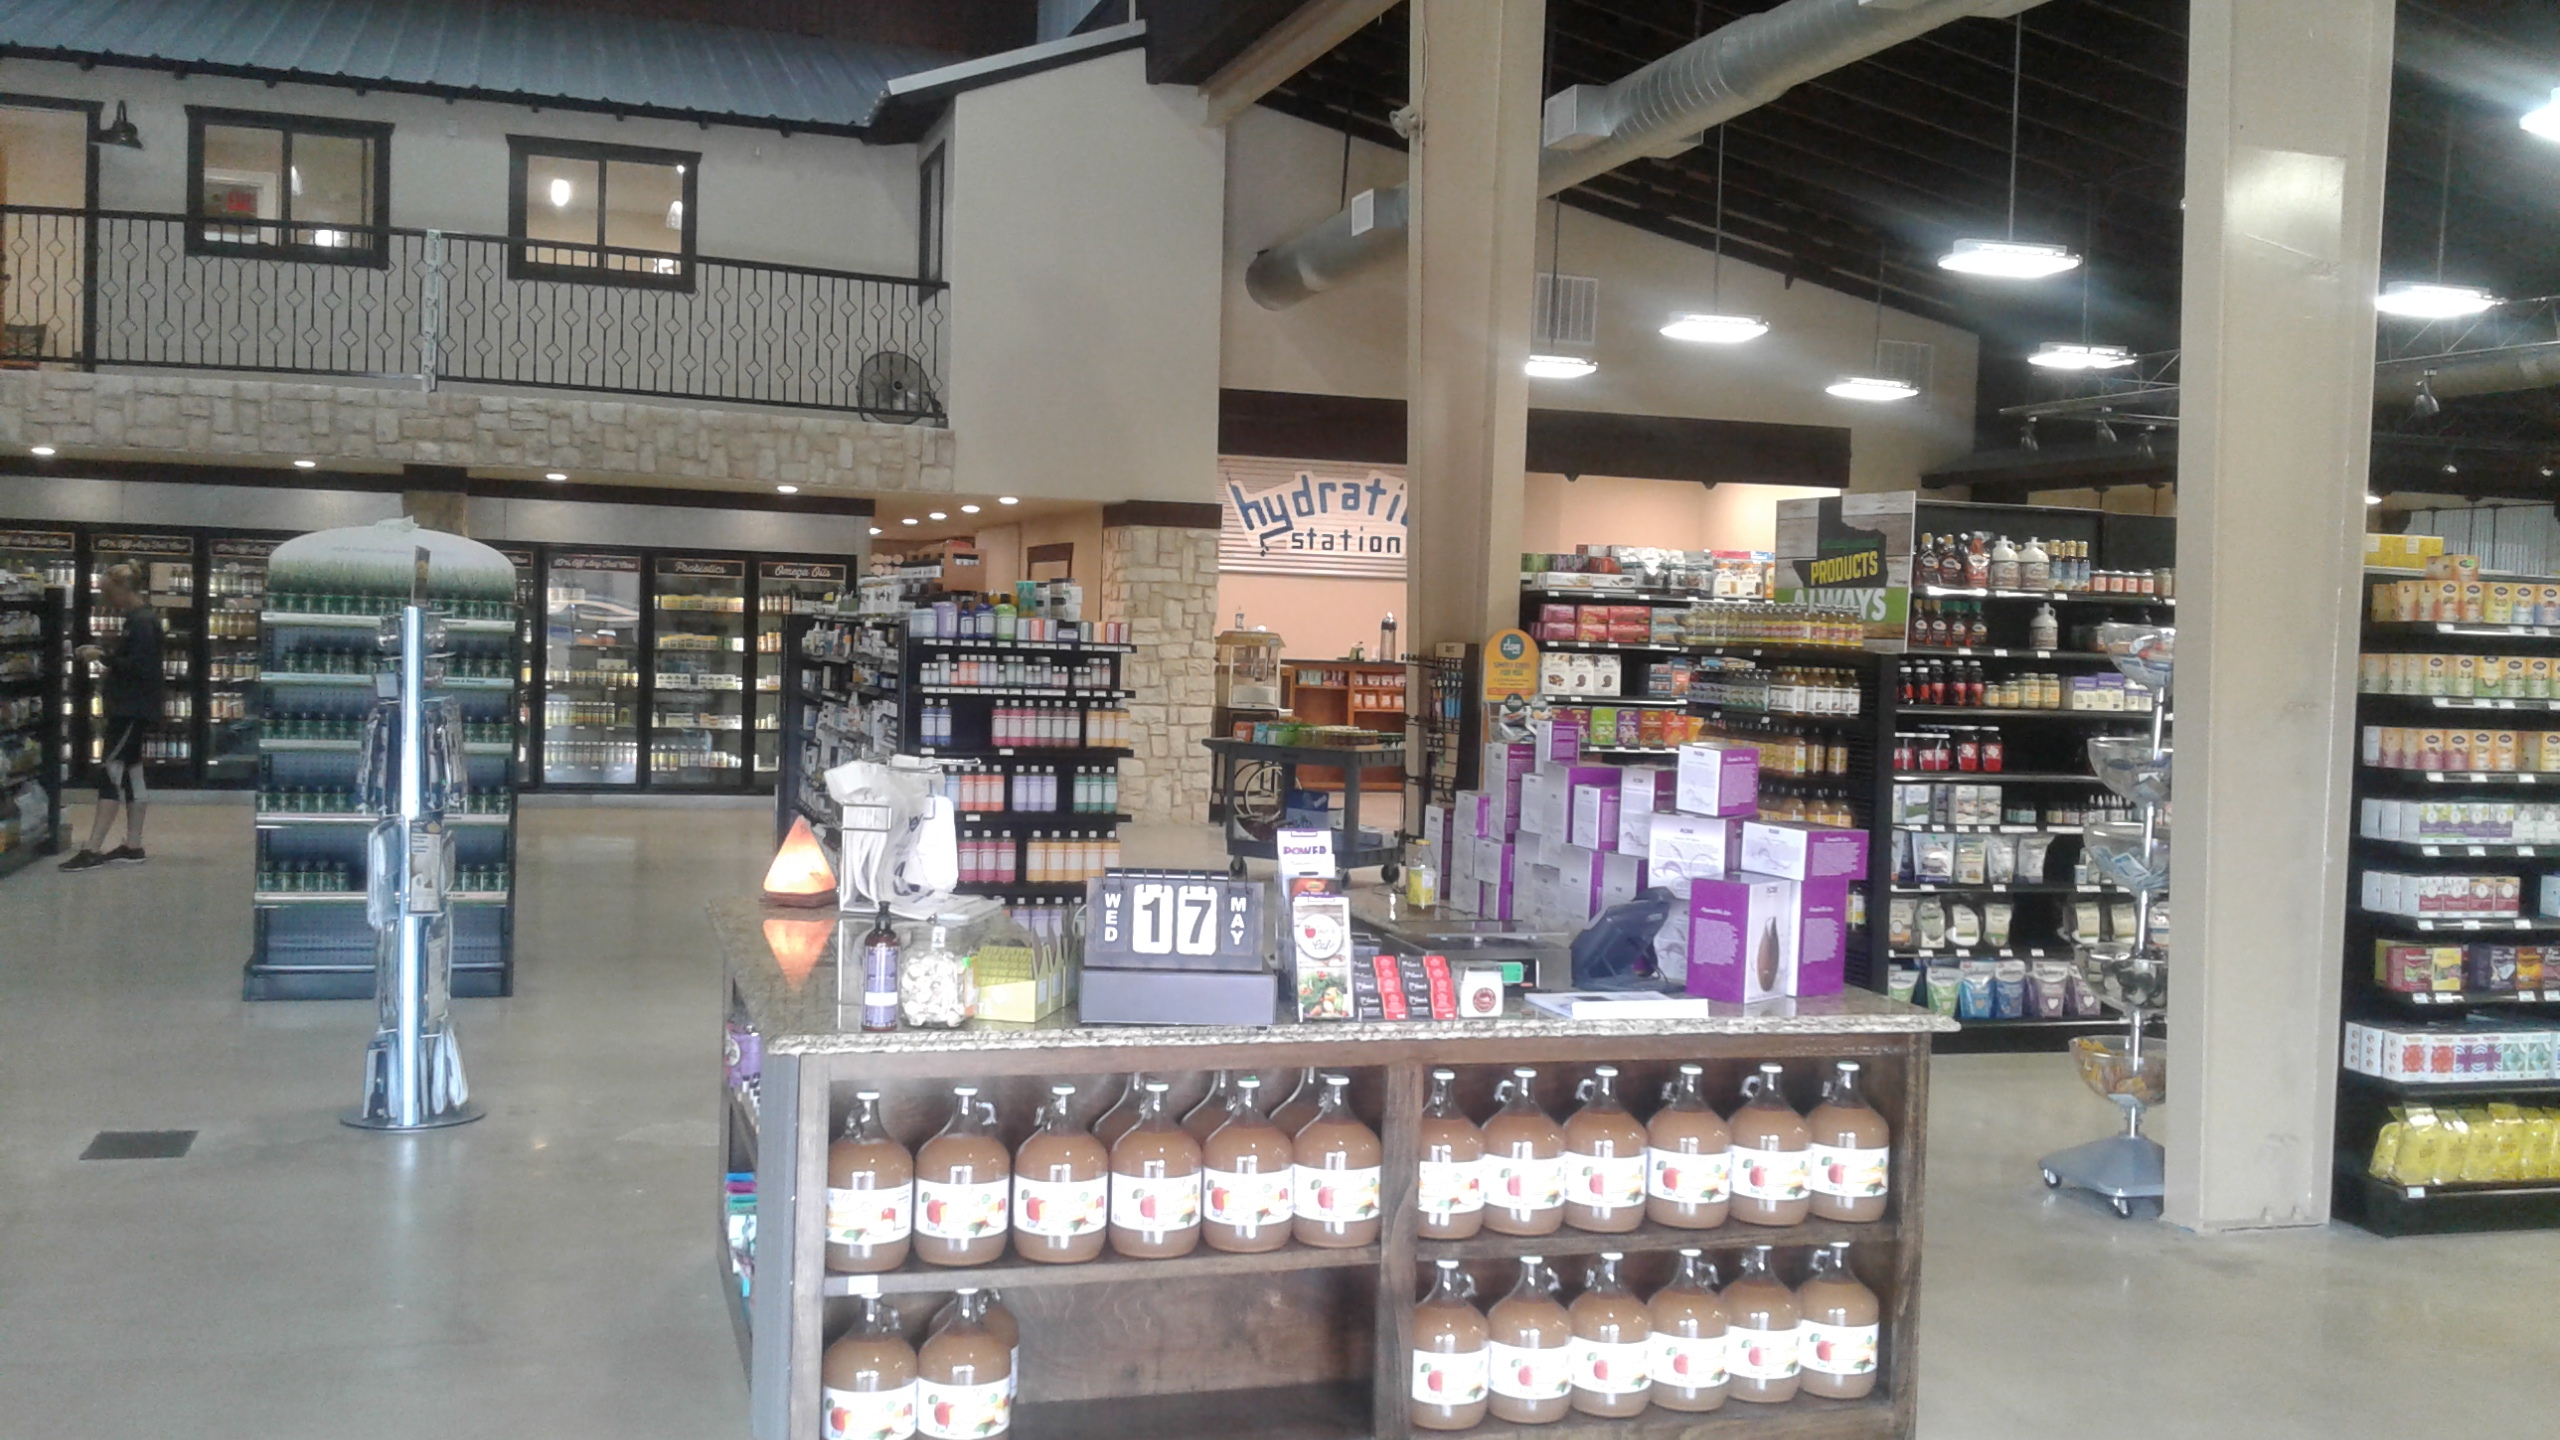 Ann S Health Food Center Market Waxahachie Tx